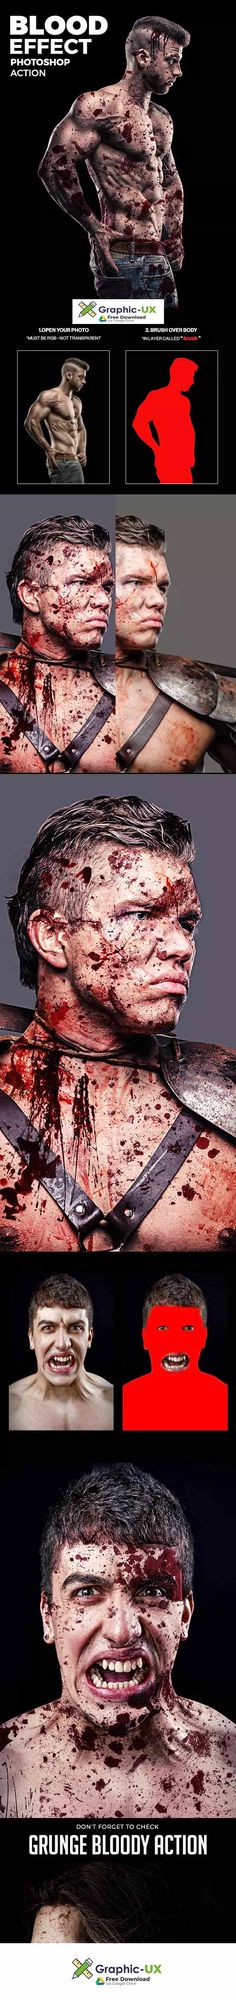 Blood Effect Photoshop Action – GraphicUX Photoshop Effects, Photoshop Actions, Photoshop Ideas, Free Photoshop, Photography Editing, Photo Editing, Video Editing, Photoshop Design, Photoshop Tutorial